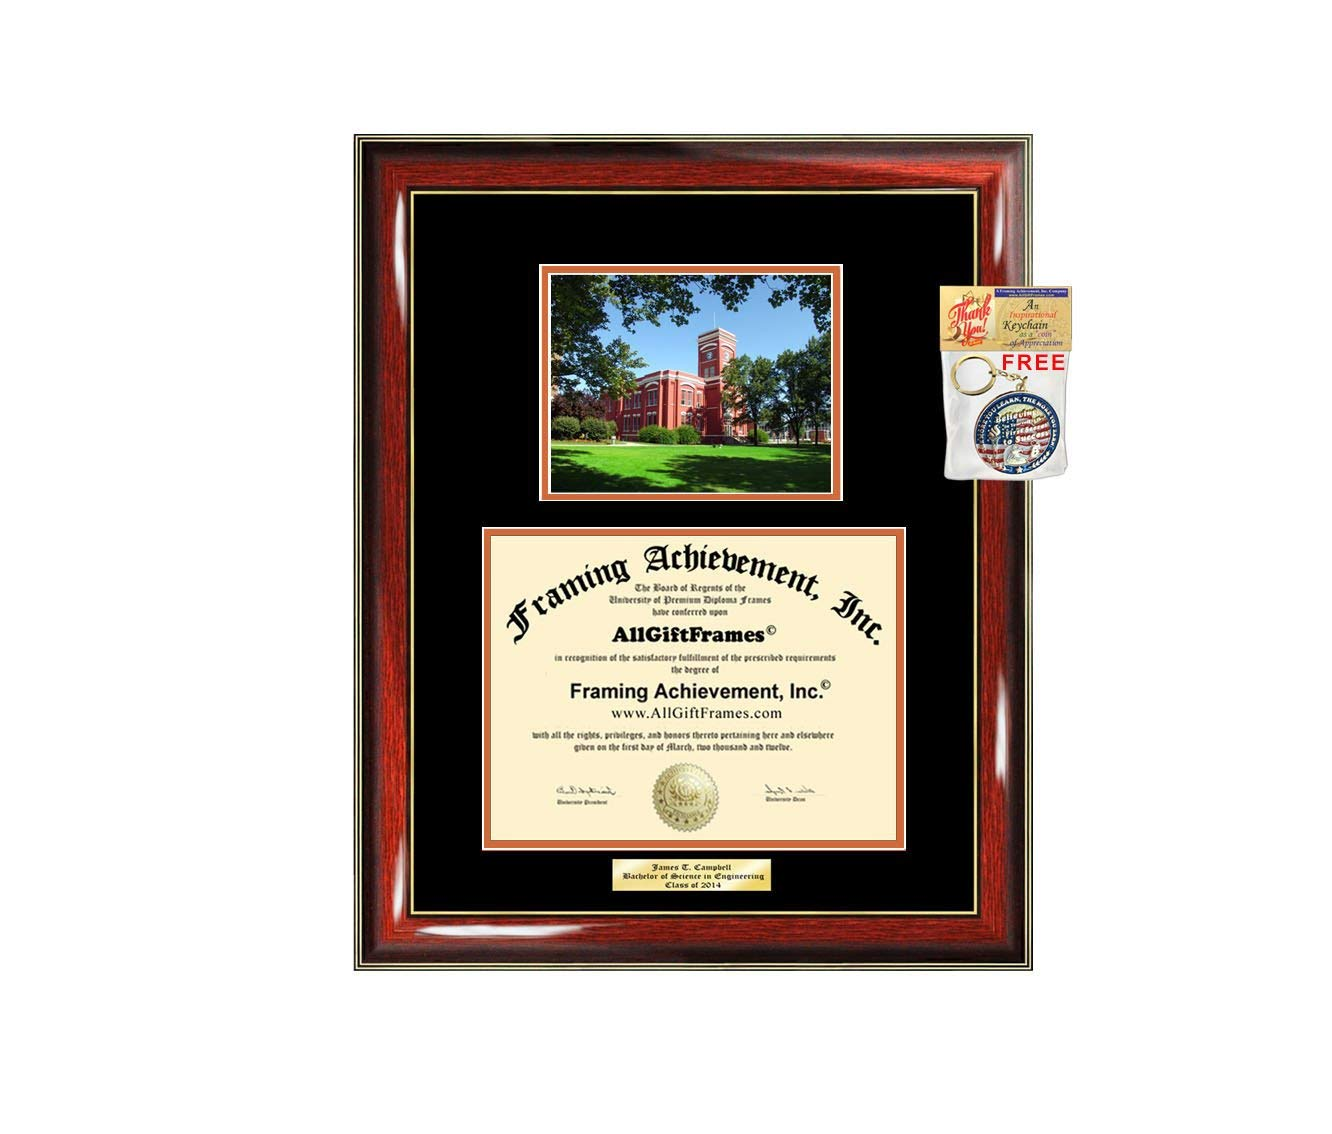 Diploma Frame Ohio Northern University ONU Graduation Gift Idea Engraved Picture Frames Engraving Degree Cheap Graduate Bachelor Masters MBA PHD Doctorate School